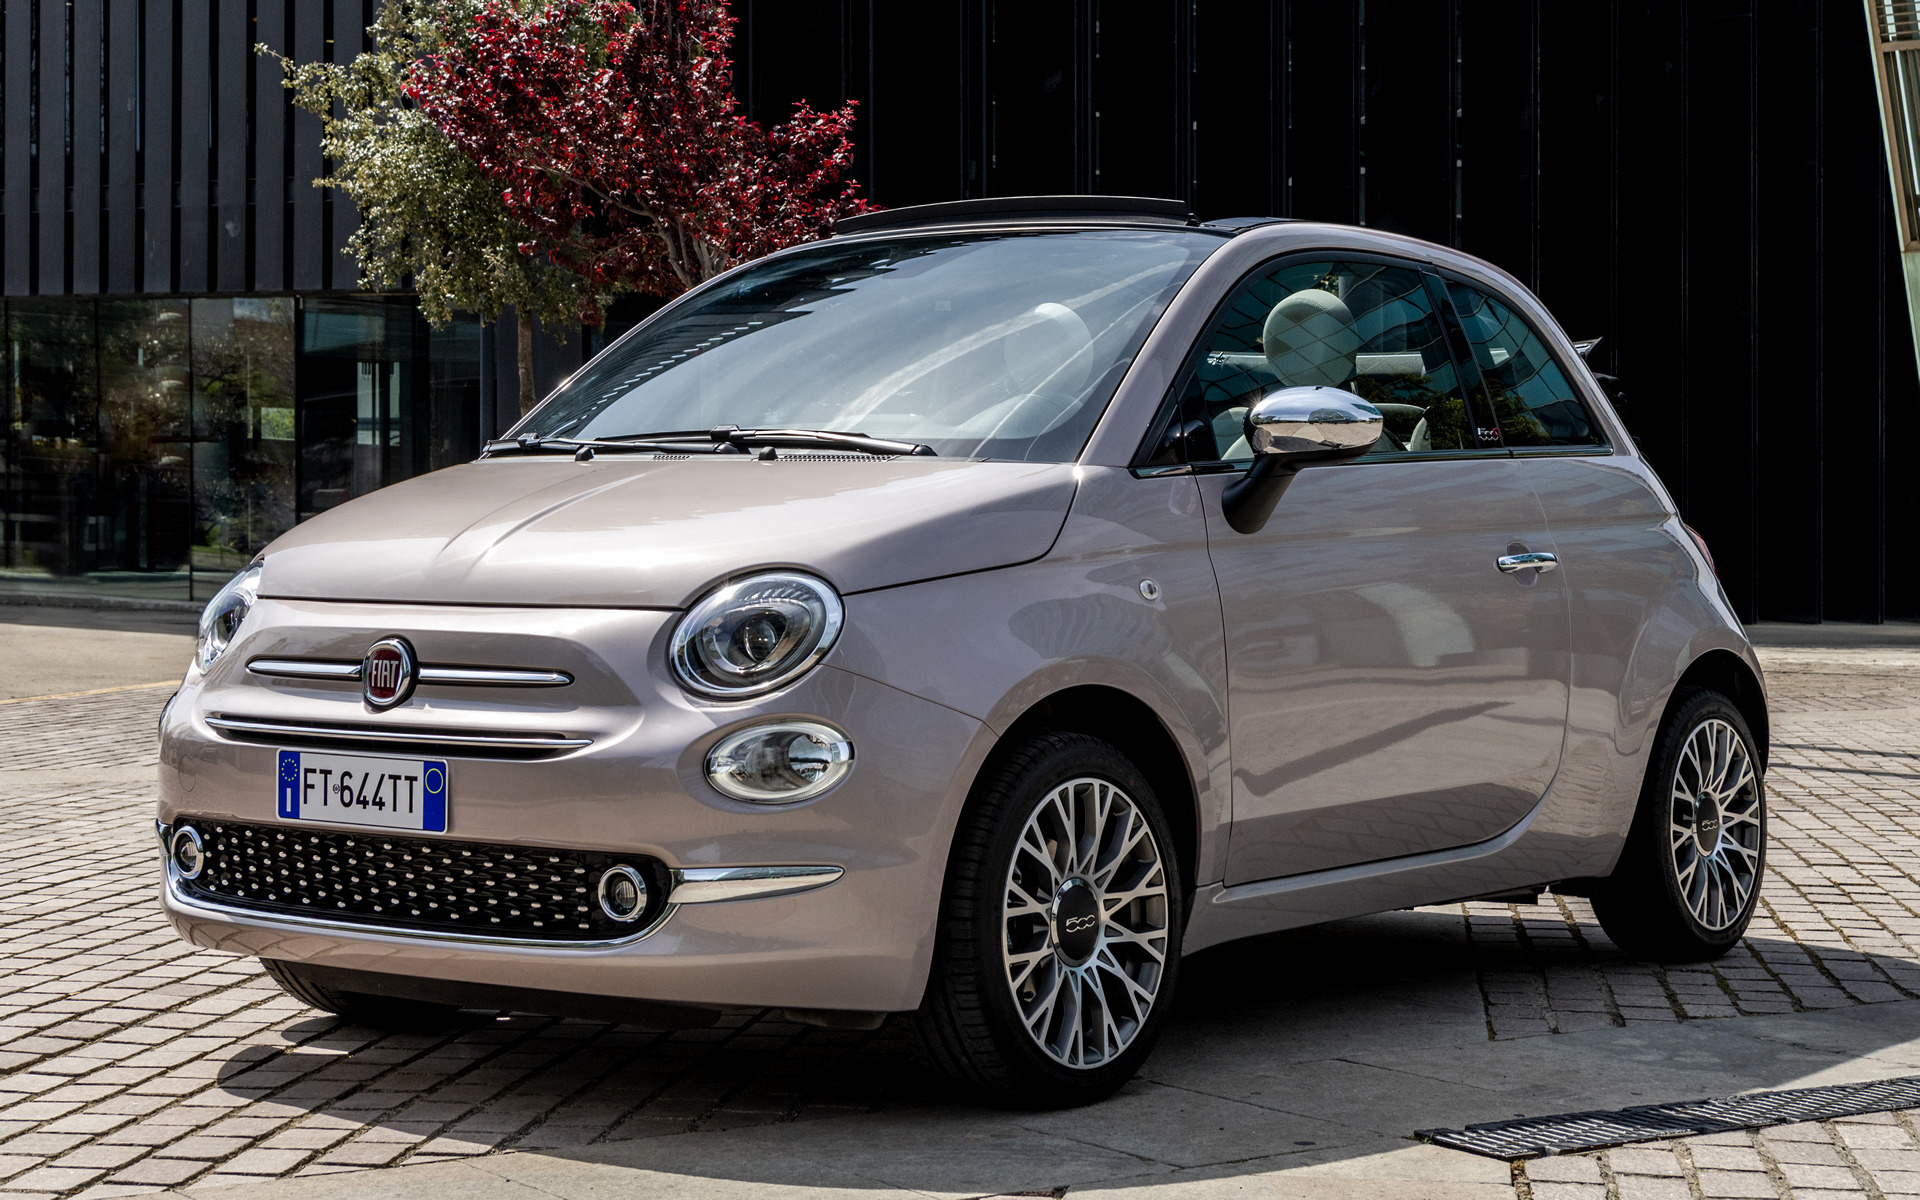 2019 Fiat 500C Star   Wallpapers and HD Images Car Pixel 1920x1200